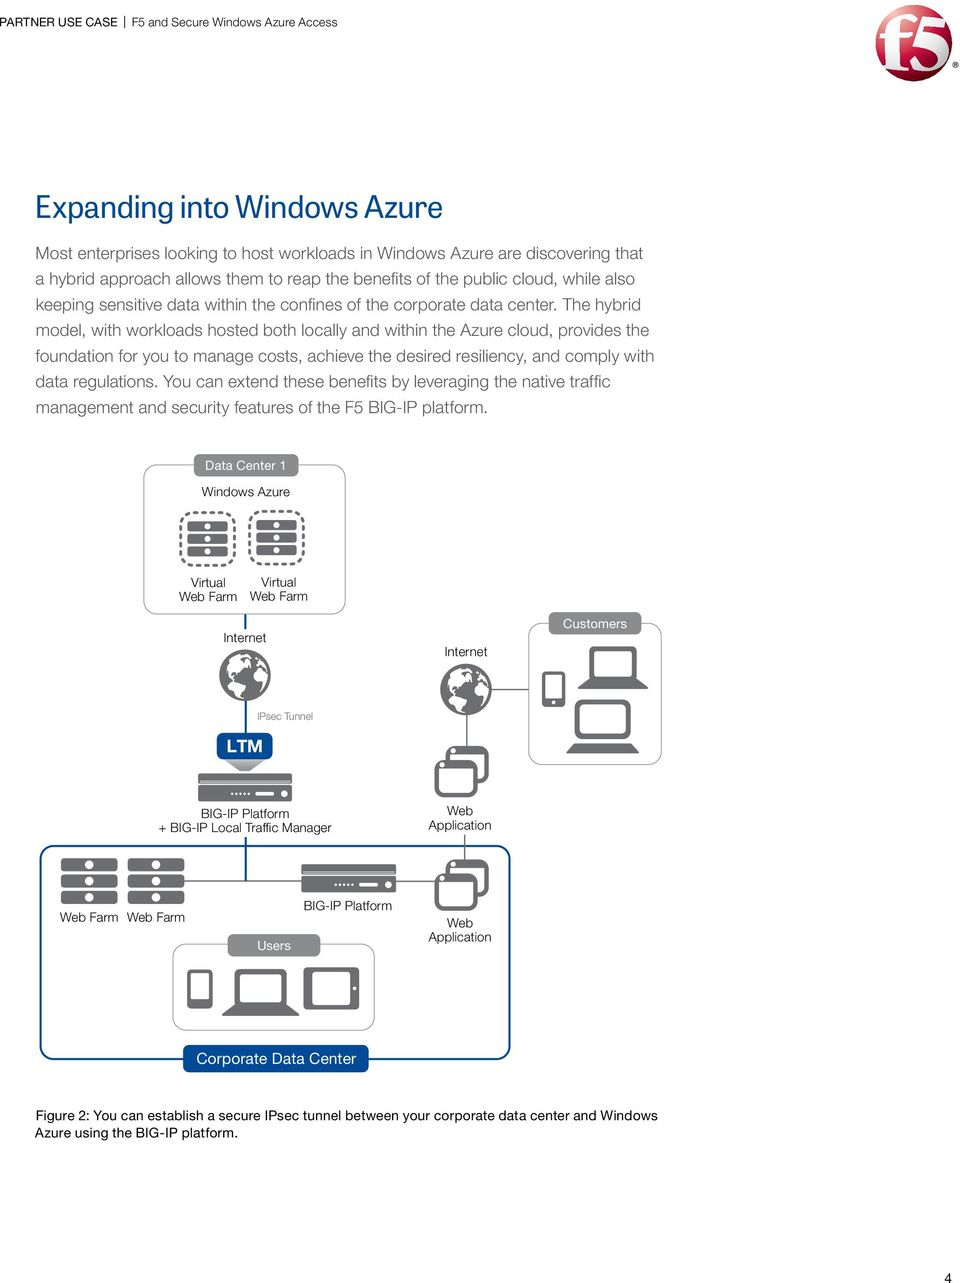 The hybrid model, with workloads hosted both locally and within the Azure cloud, provides the foundation for you to manage costs, achieve the desired resiliency, and comply with data